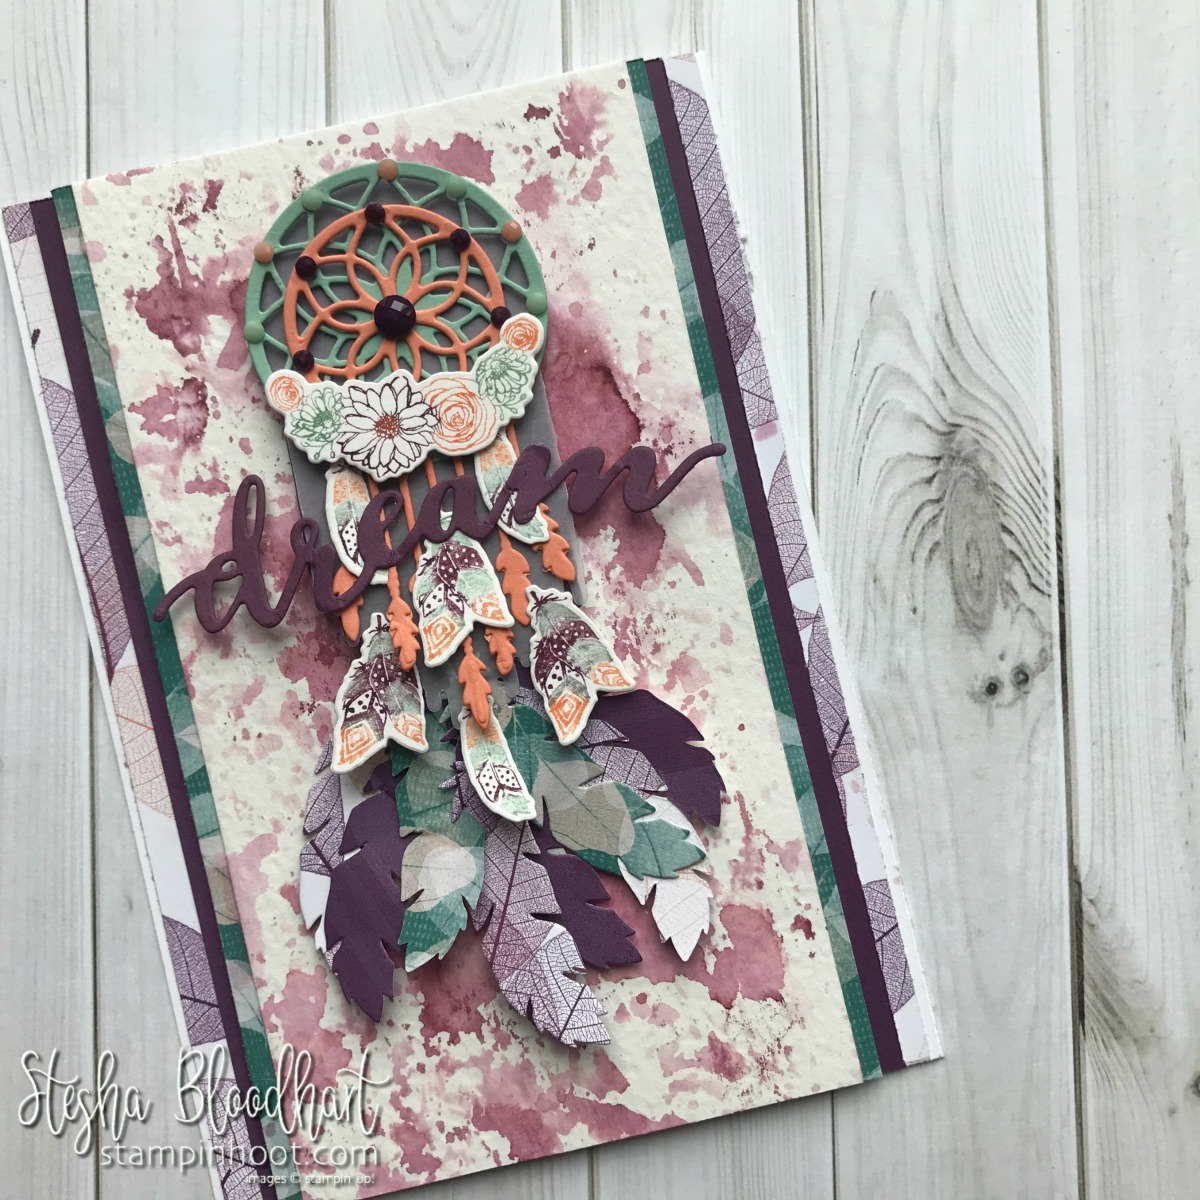 Follow Your Dreams Bundle by Stampin' Up! Dream Catcher Handmade Card by Stesha Bloodhart, Stampin' Hoot! for #gdp145 Color Challenge #steshabloodhart #stampinhoot